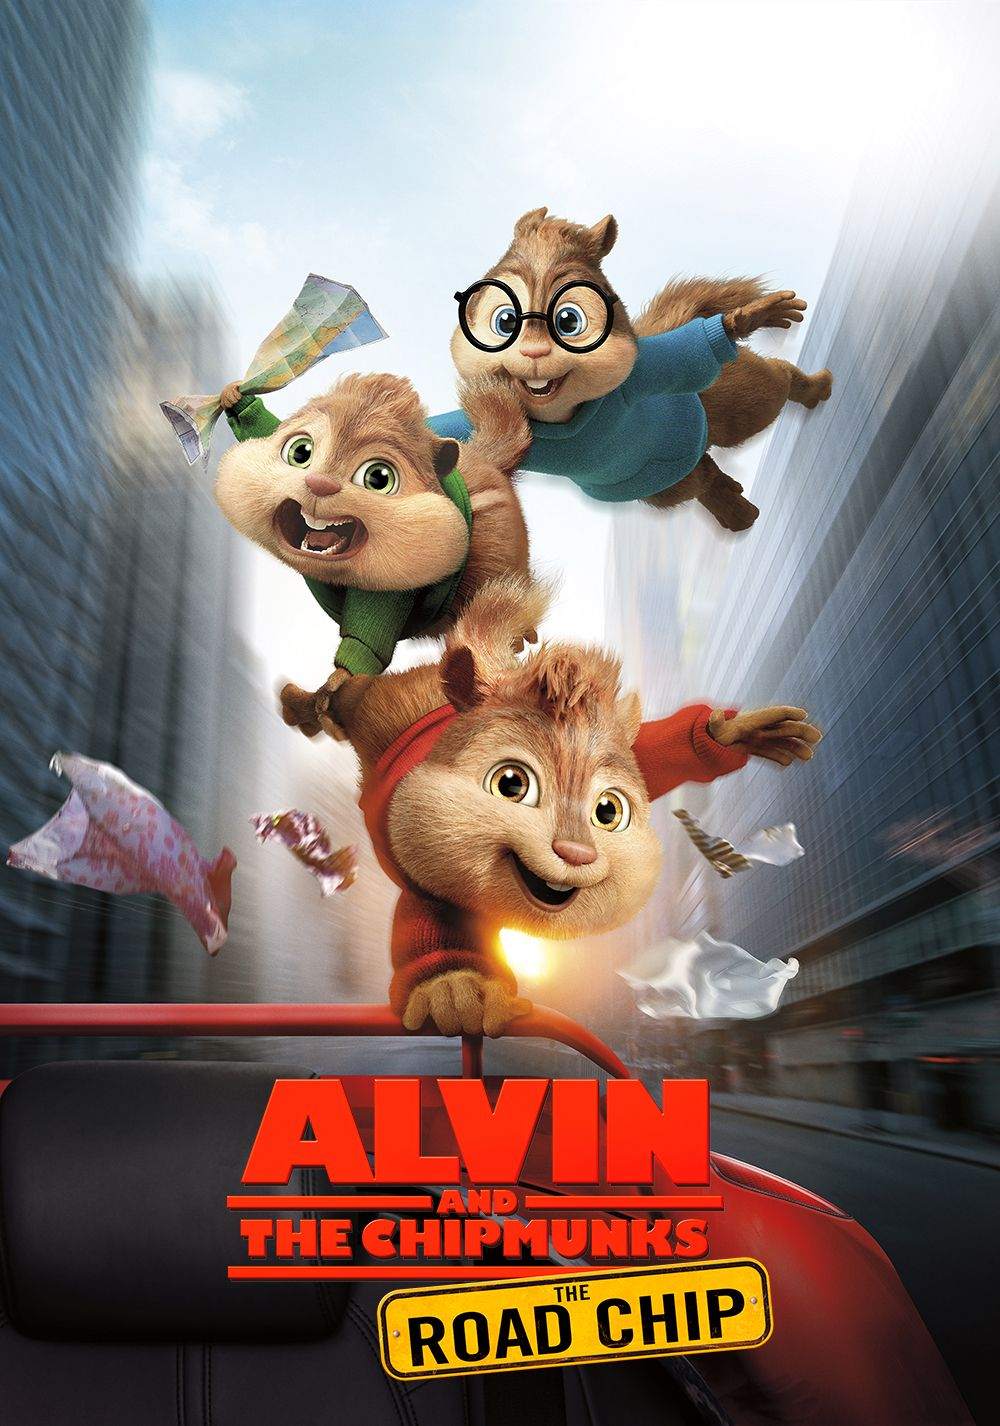 Alvin And The Chipmunks The Road Chip 2015 Boys On The Hood